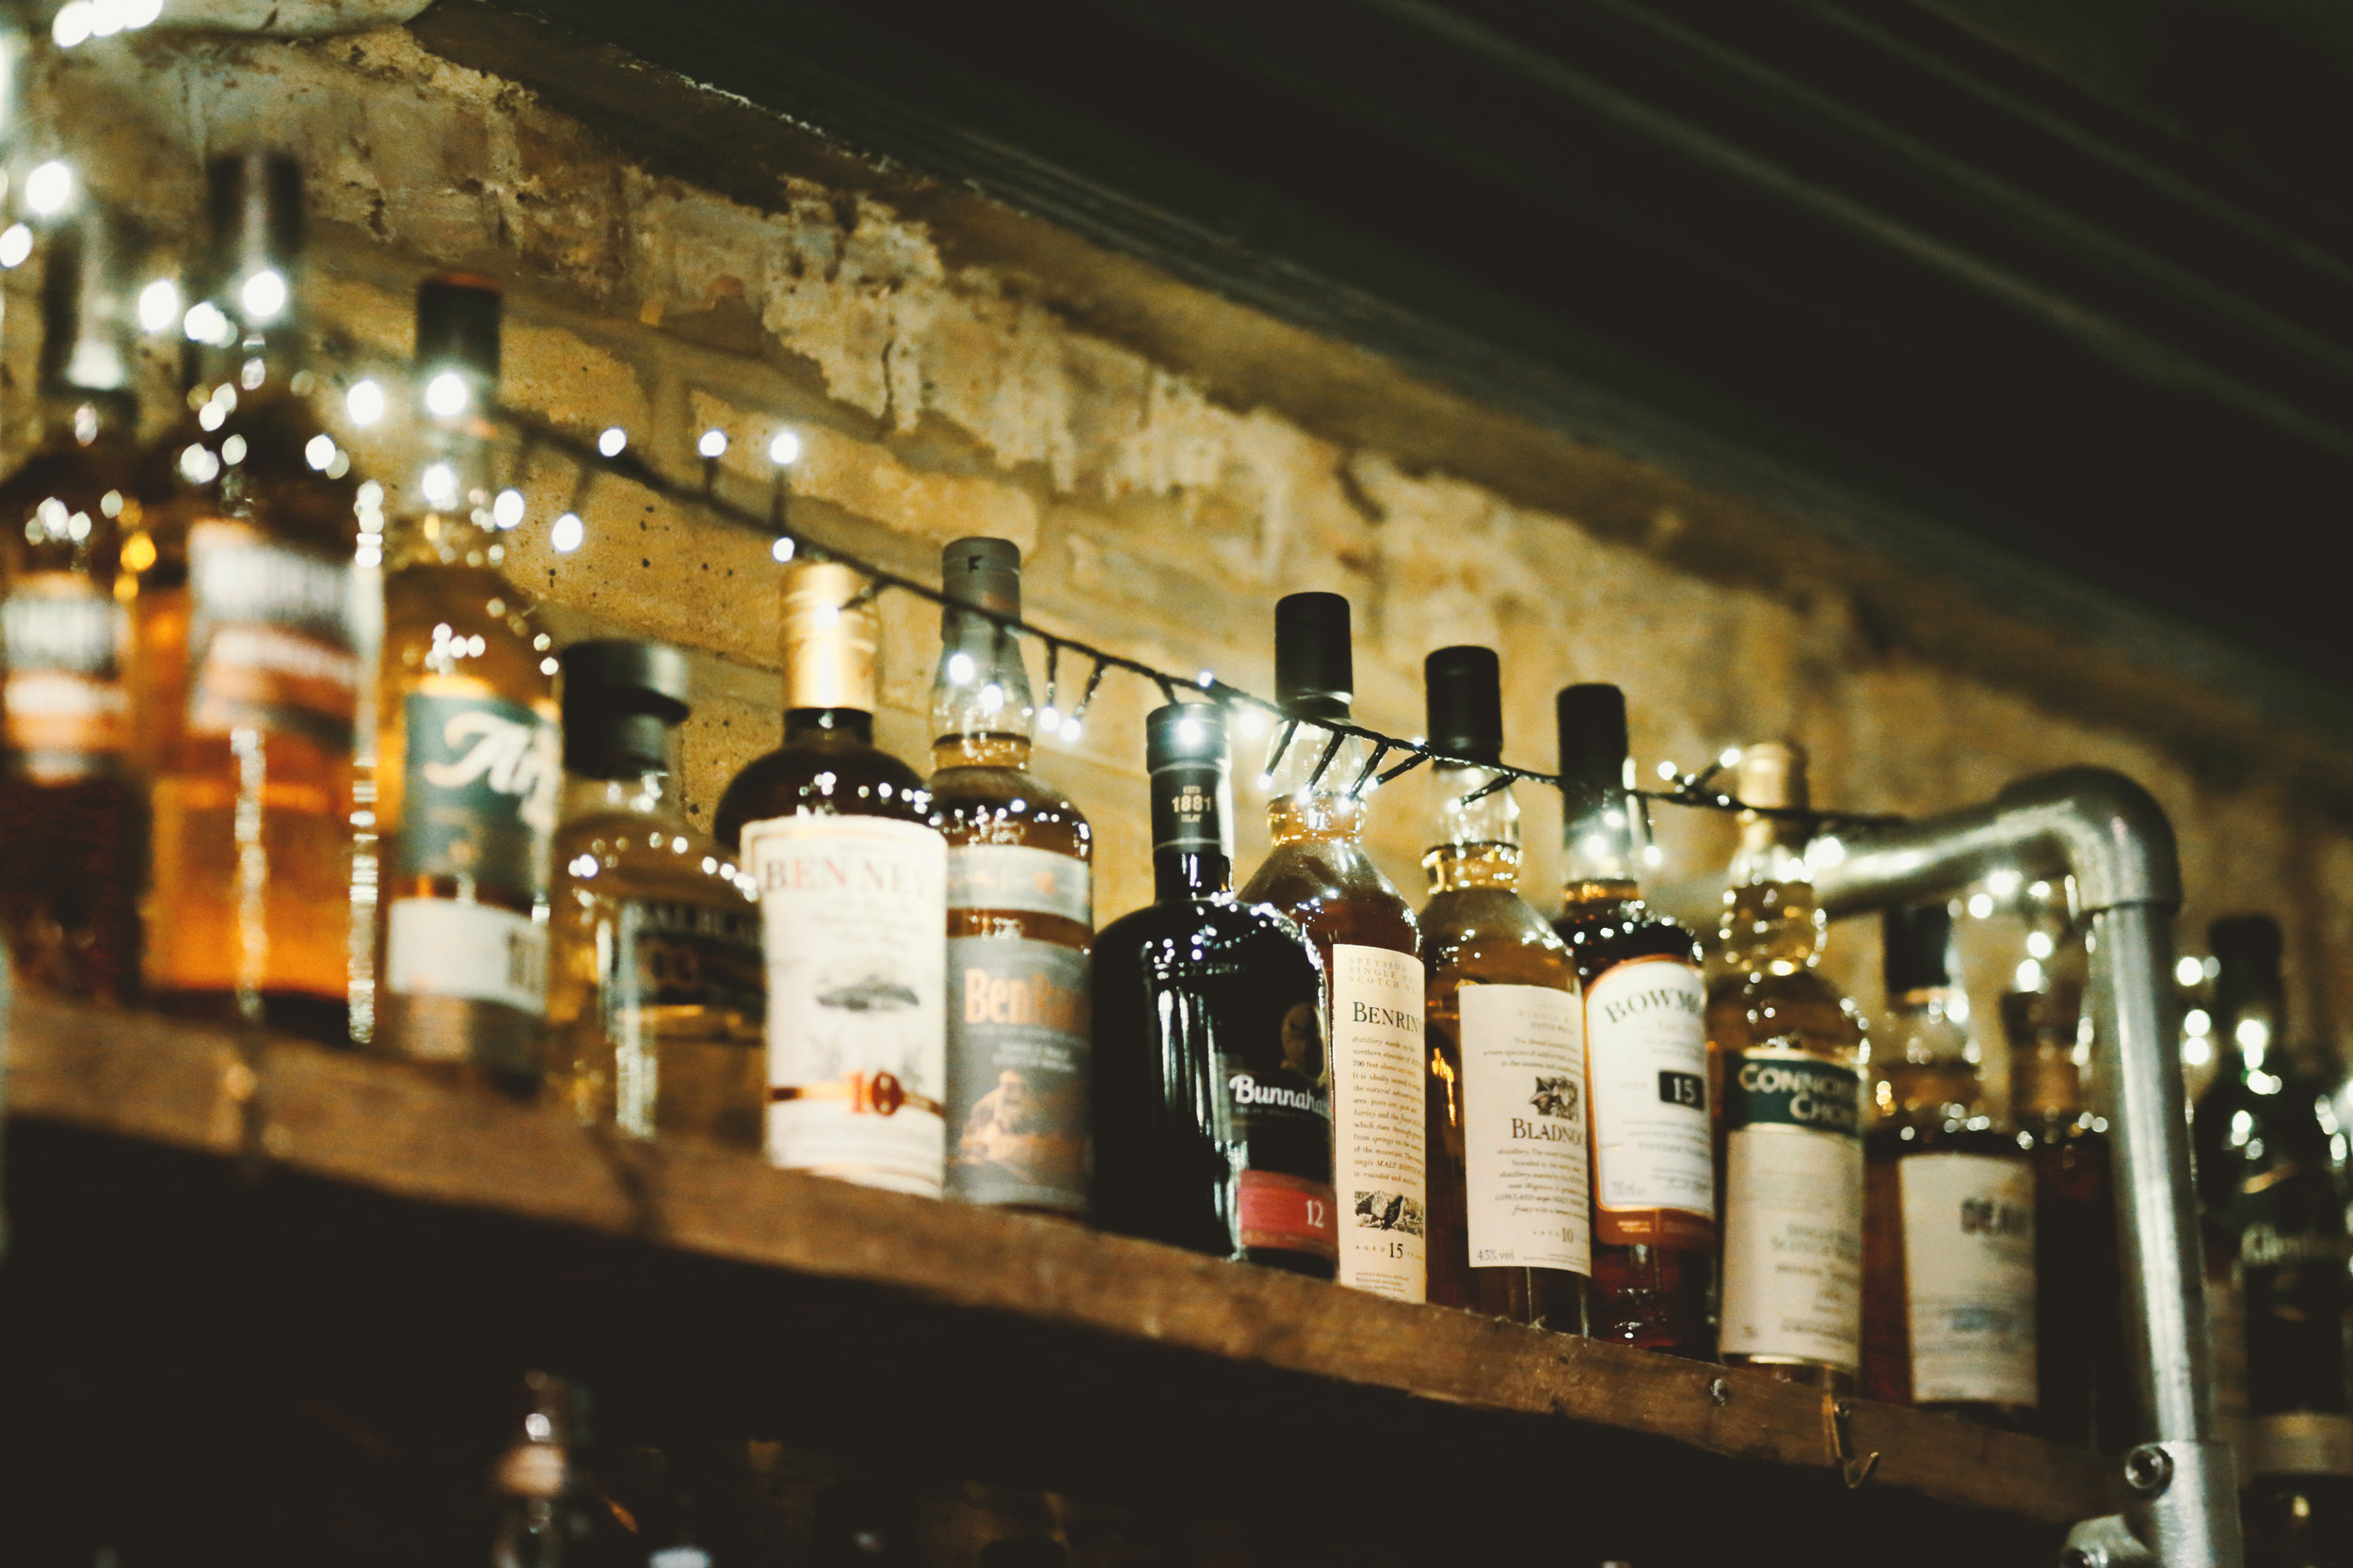 Restaurant whisky shelf.jpg